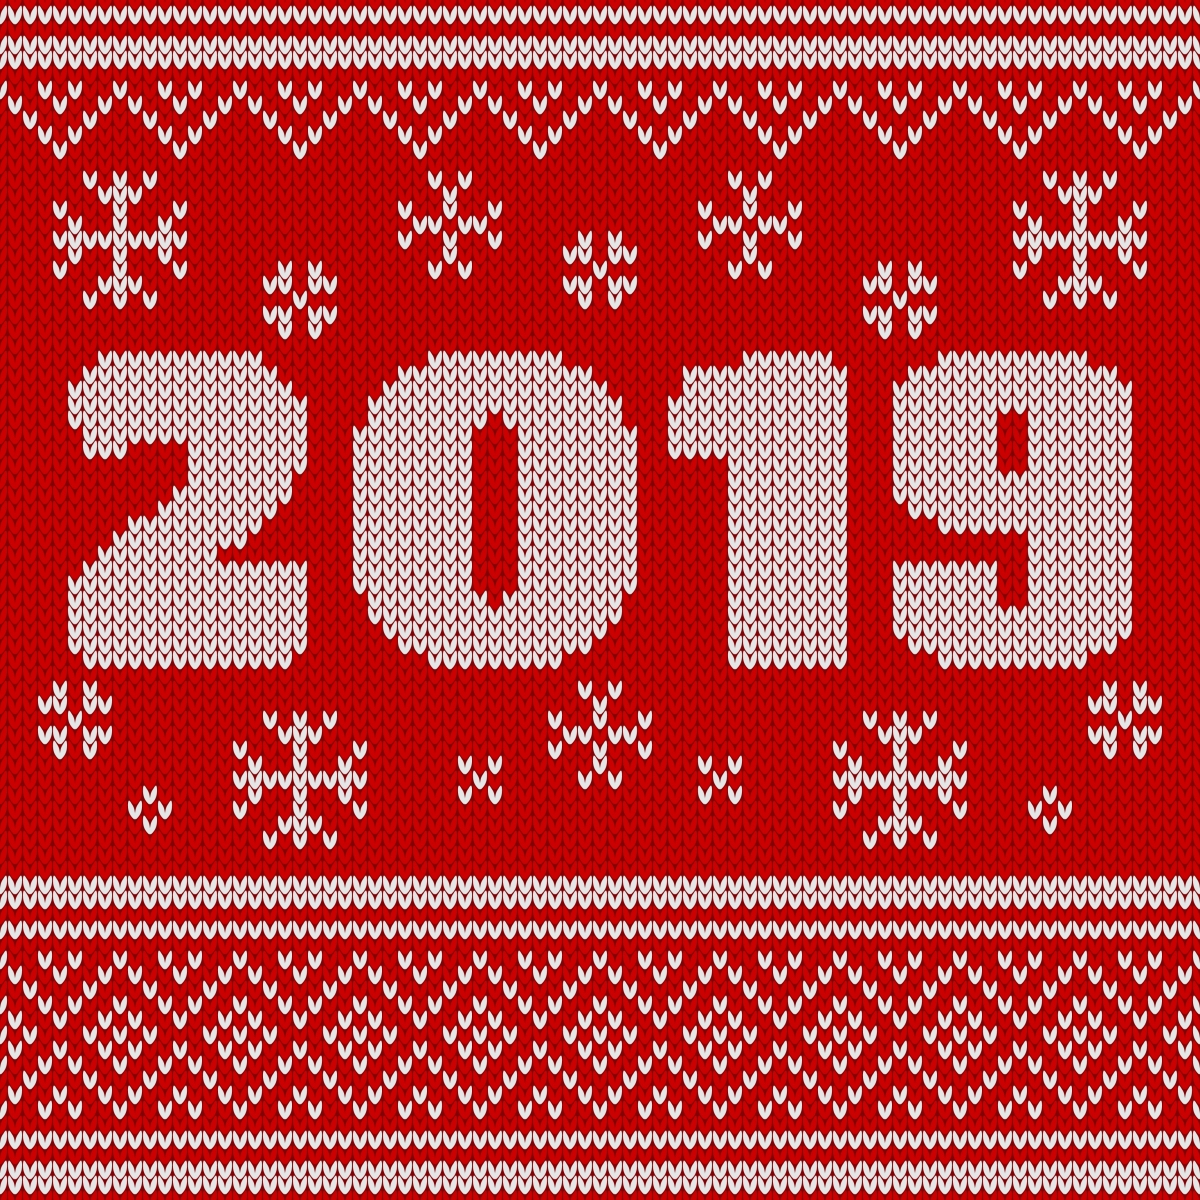 Seamless Knitting Patterns New Year Seamless Knitted Pattern With Number 2019 Knitting Sweater